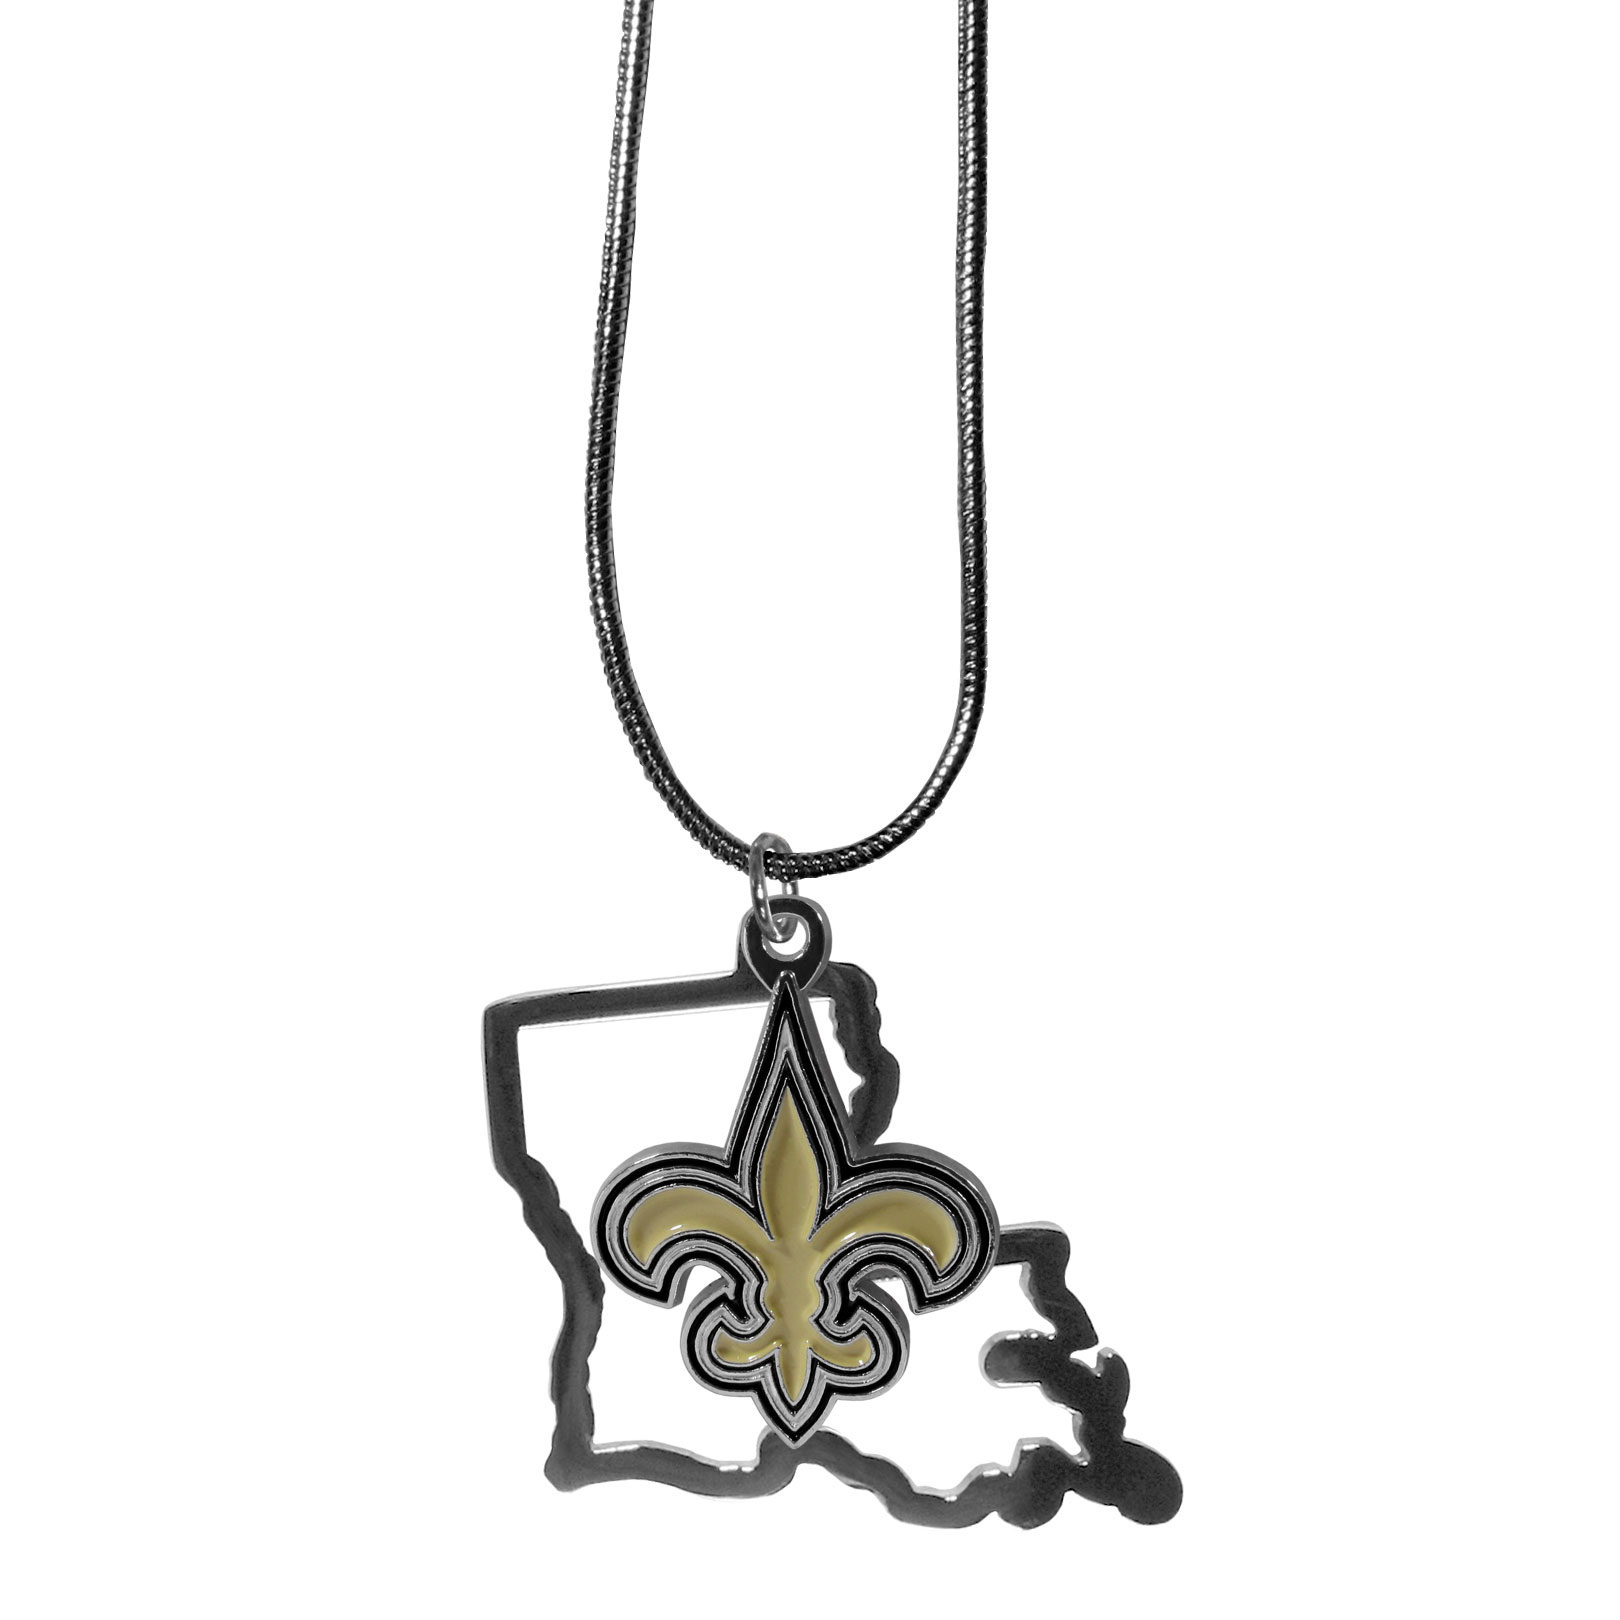 New Orleans Saints State Charm Necklace - Get in on the trend! State themes are a trend that just keeps getting more popular and these necklaces take the state style and give it a sporty twist with a New Orleans Saints added to the state outline charm. The come on a snake chain that is 22 inches long.